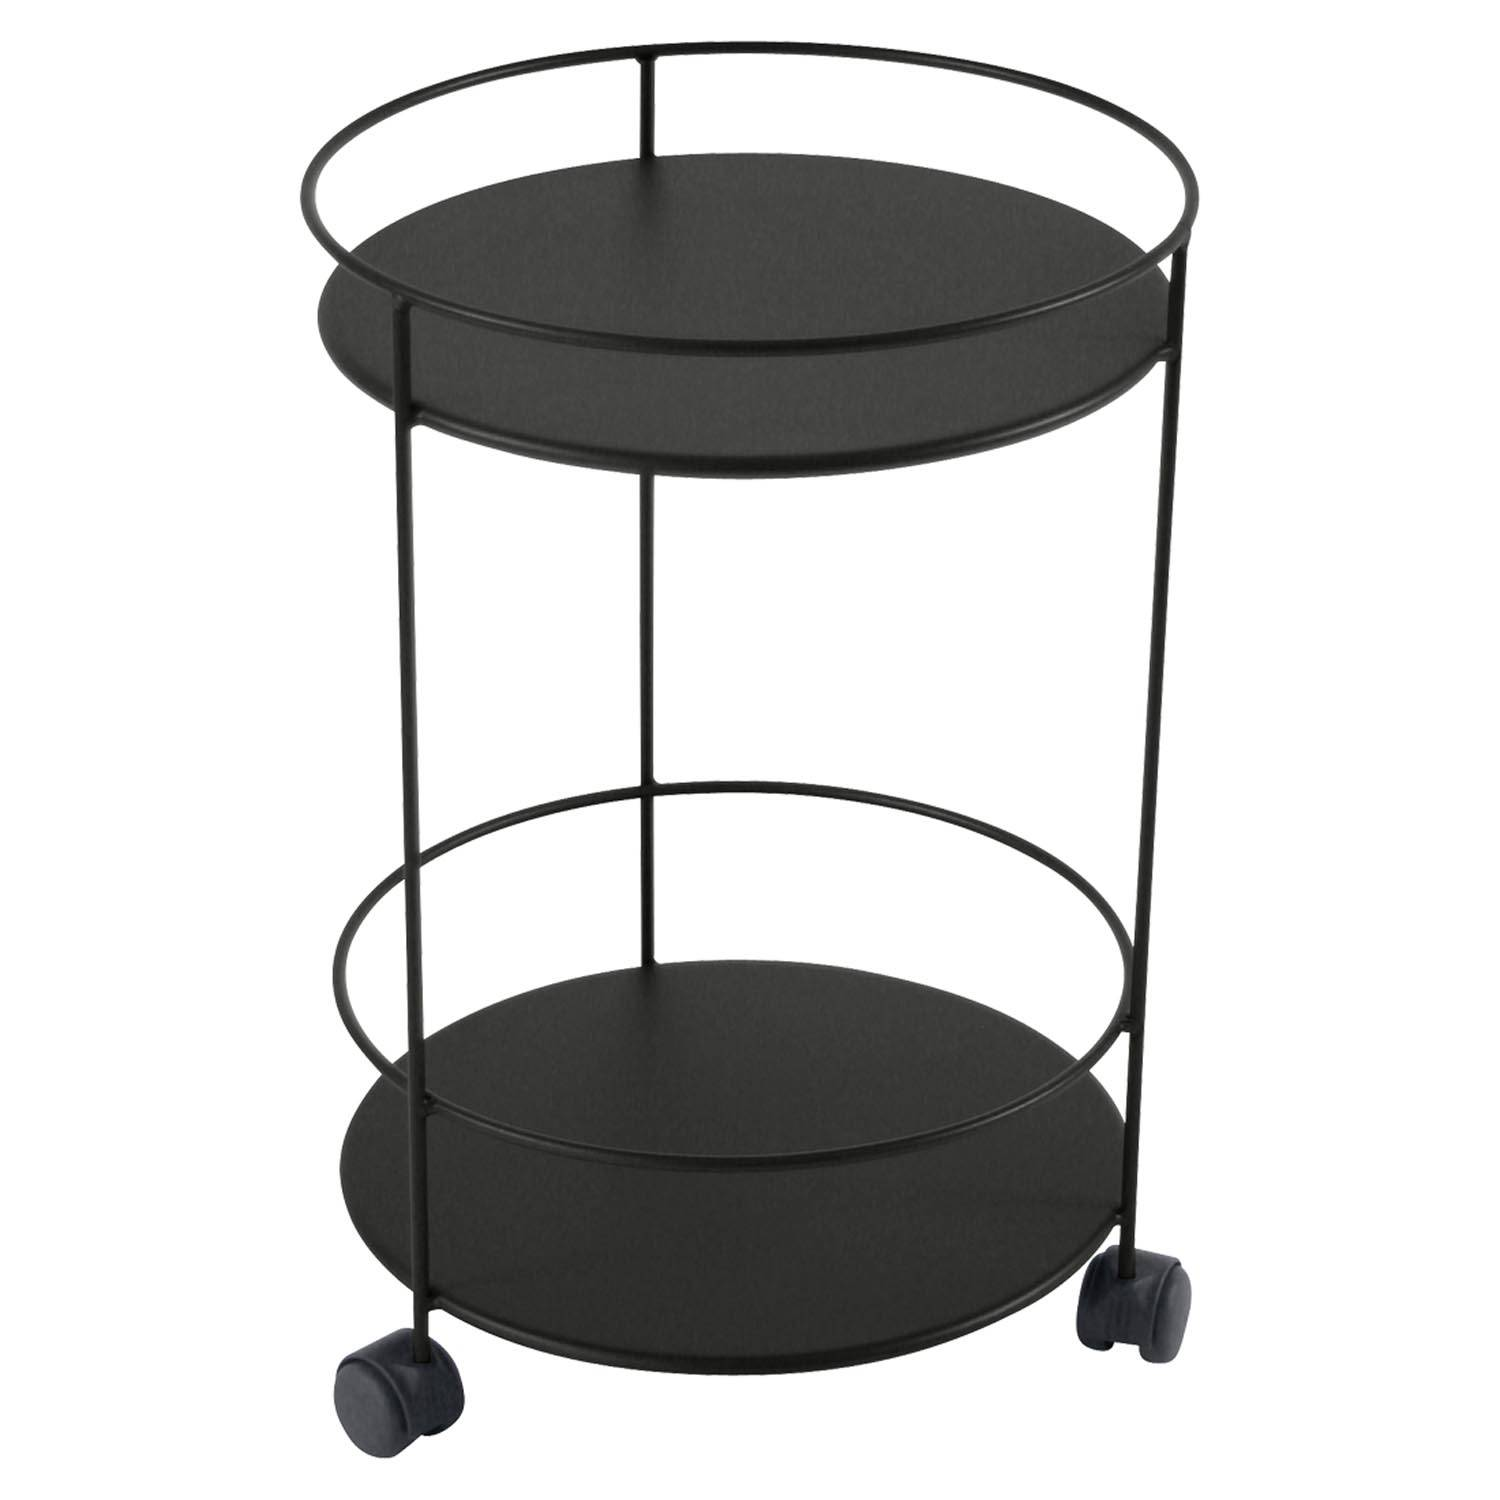 Fermob Small Table Perforated Ø40, Liquorice